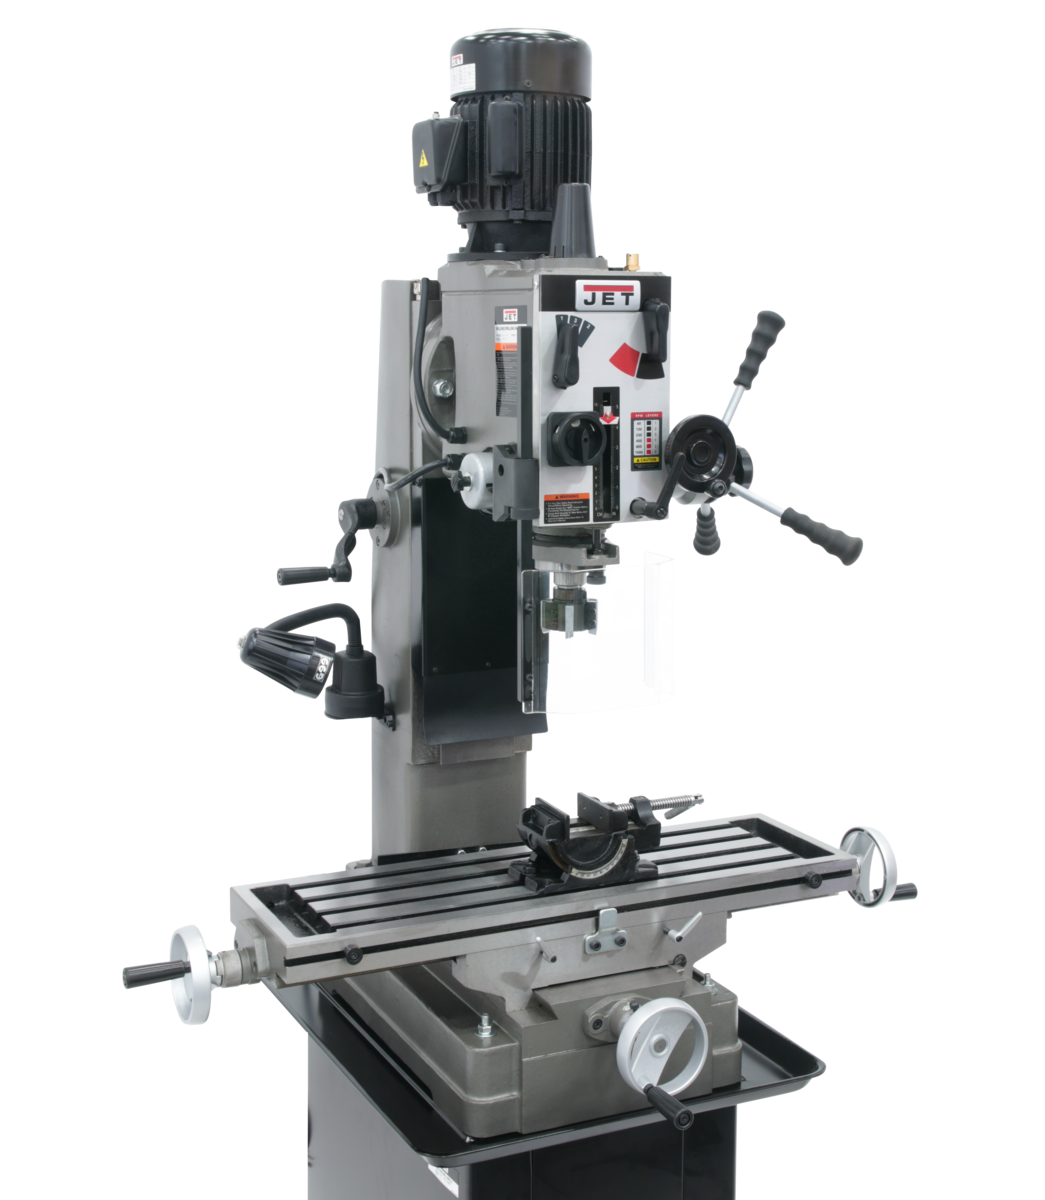 JMD-45GH Geared Head Square Column Mill/Drill with Newall DP500 2-Axis DRO & X-Powerfeed